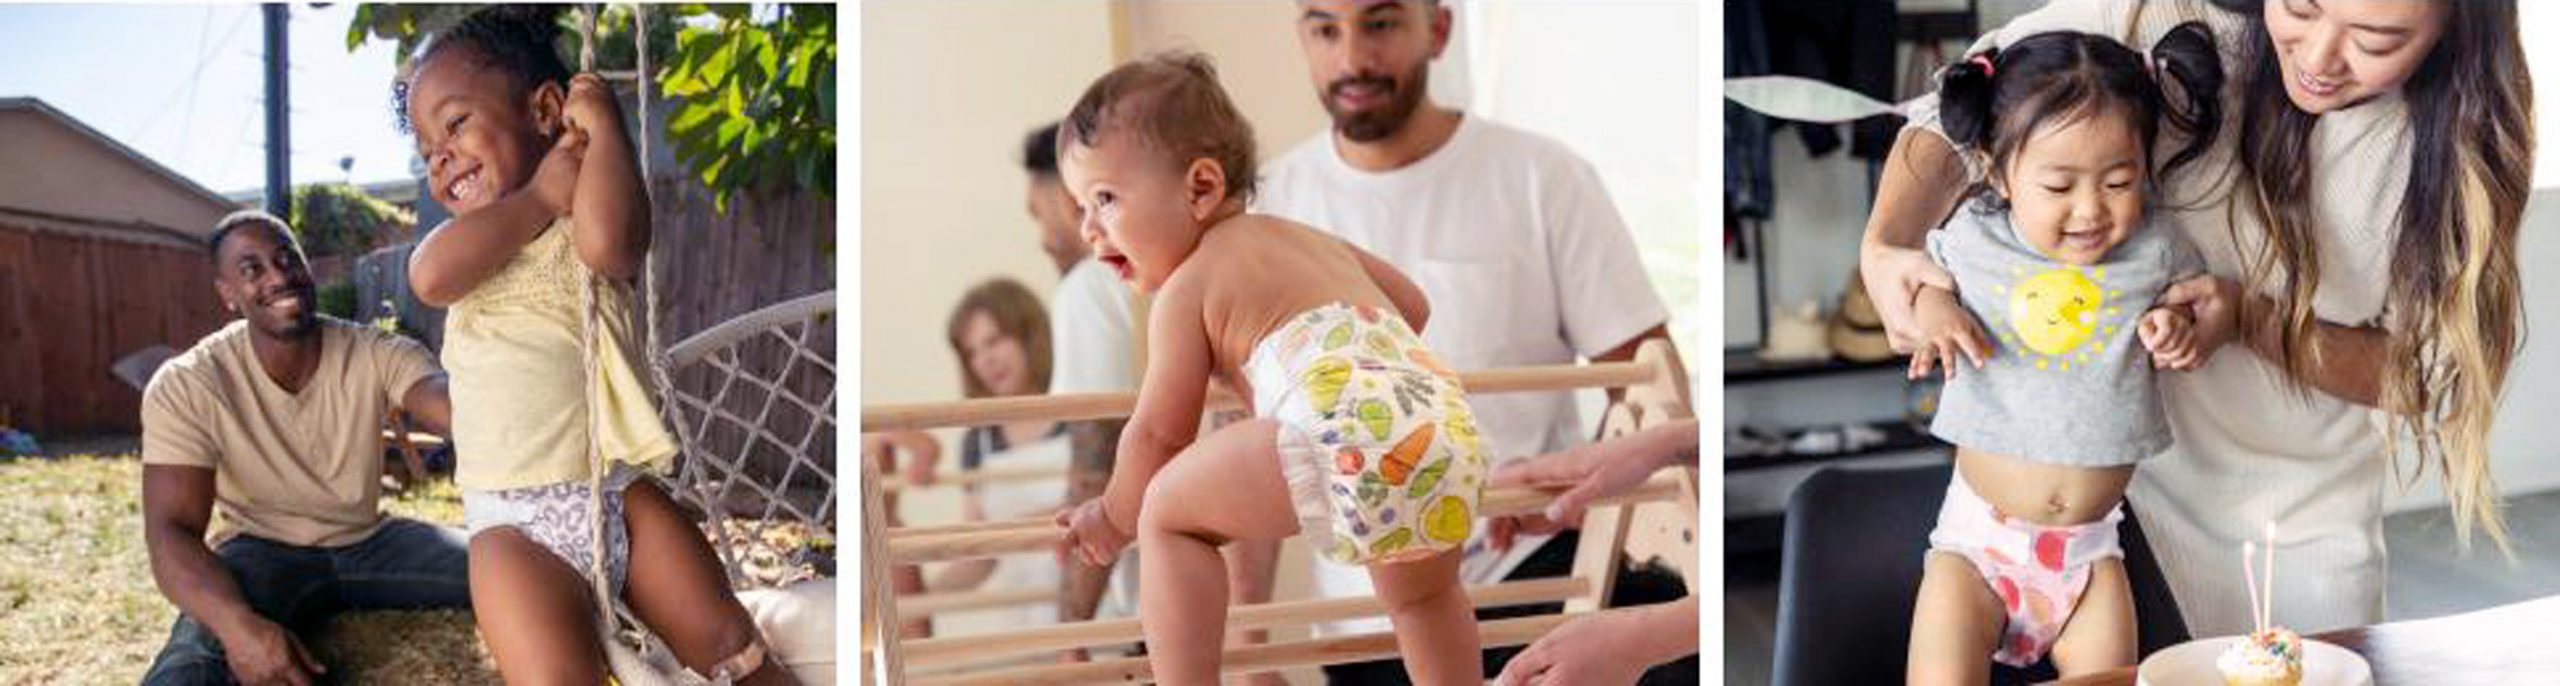 How to Use of the Disposable Diapers